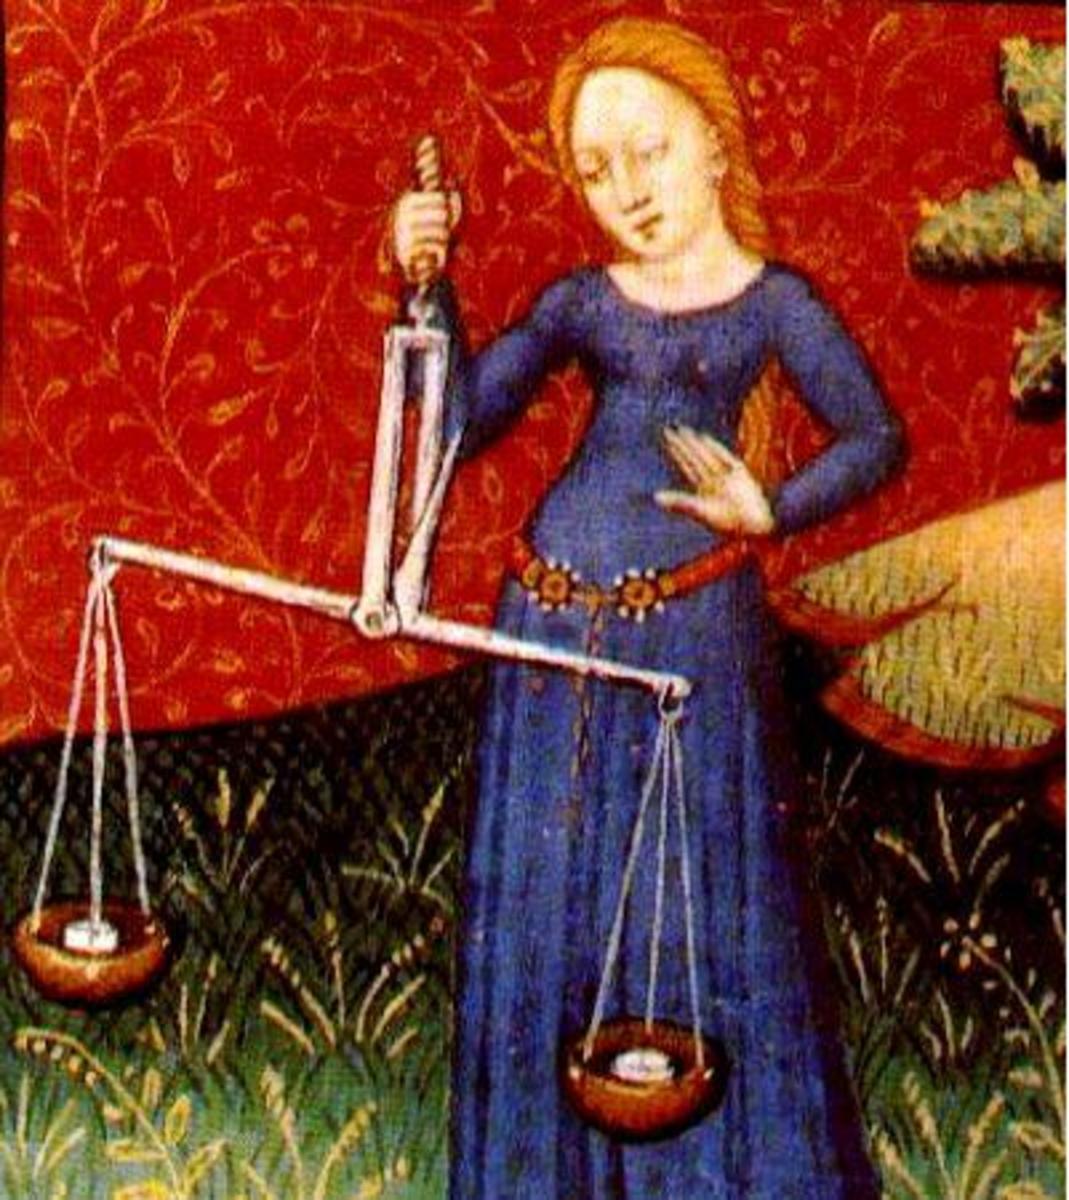 Libra is represented by the symbol of the scales.  Needless to say, life balance and justice are major concerns for a Libra.